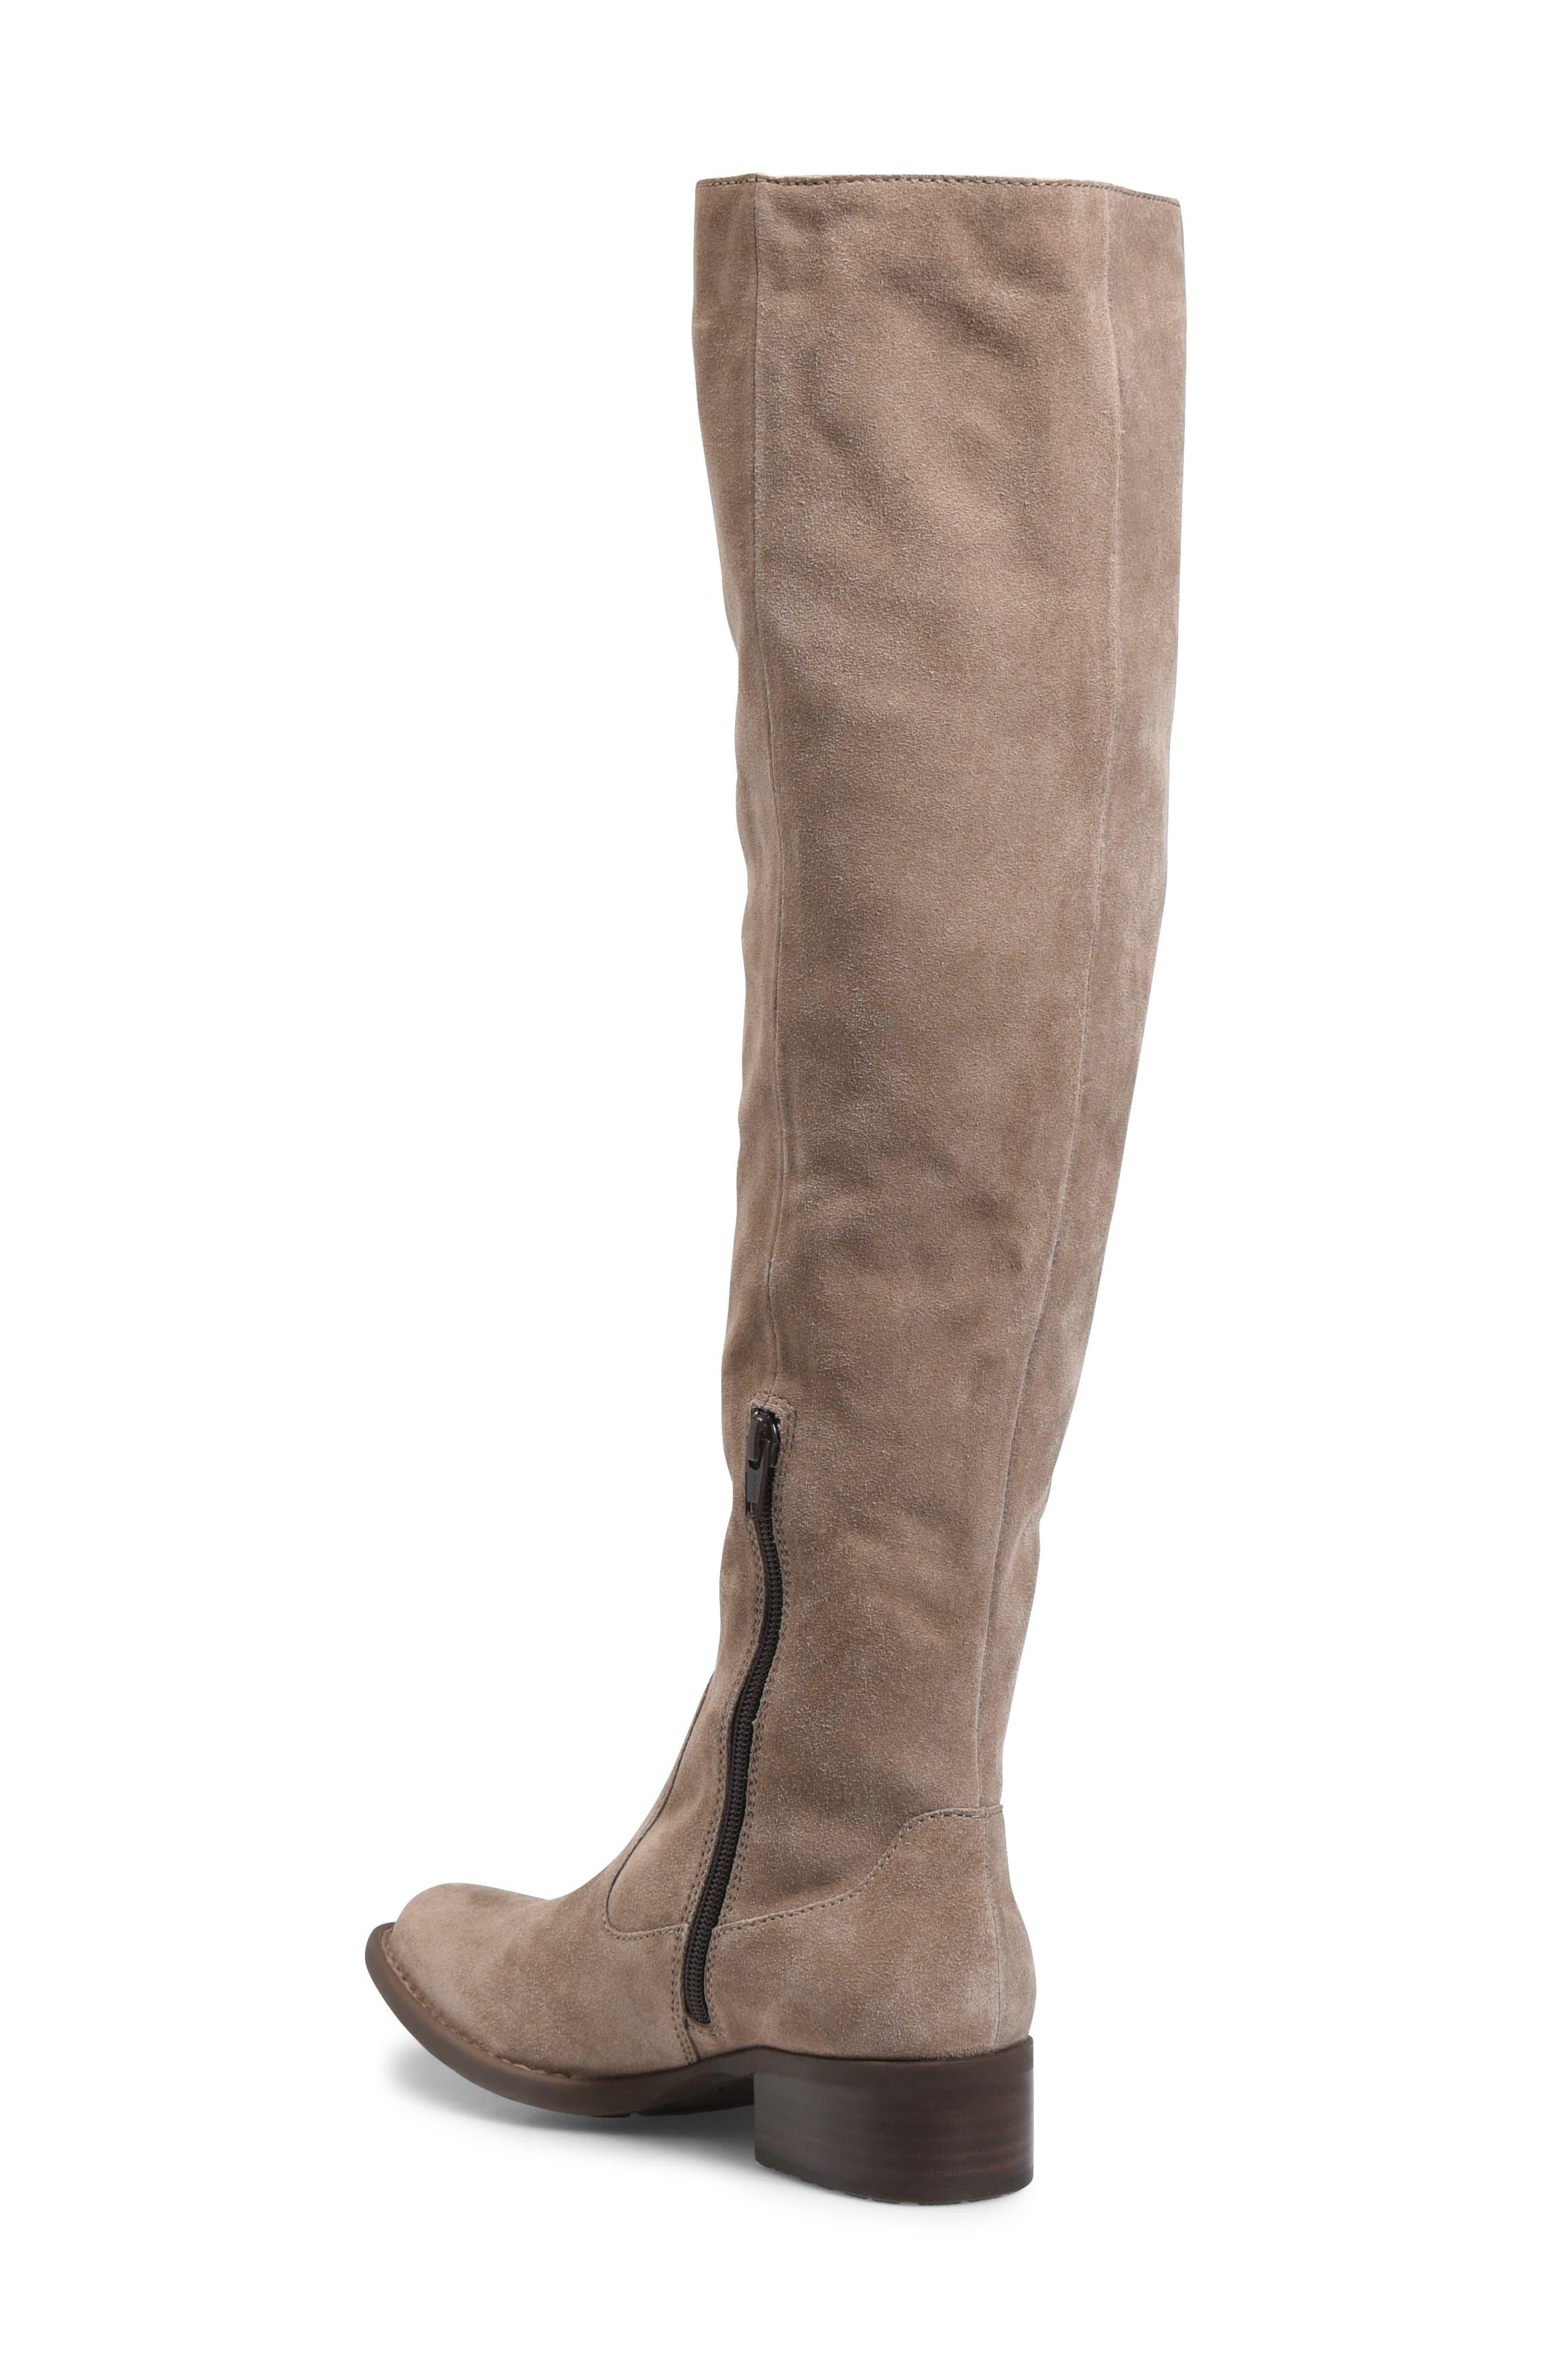 Cricket Over the Knee Boot,                             Alternate thumbnail 2, color,                             TAUPE SUEDE